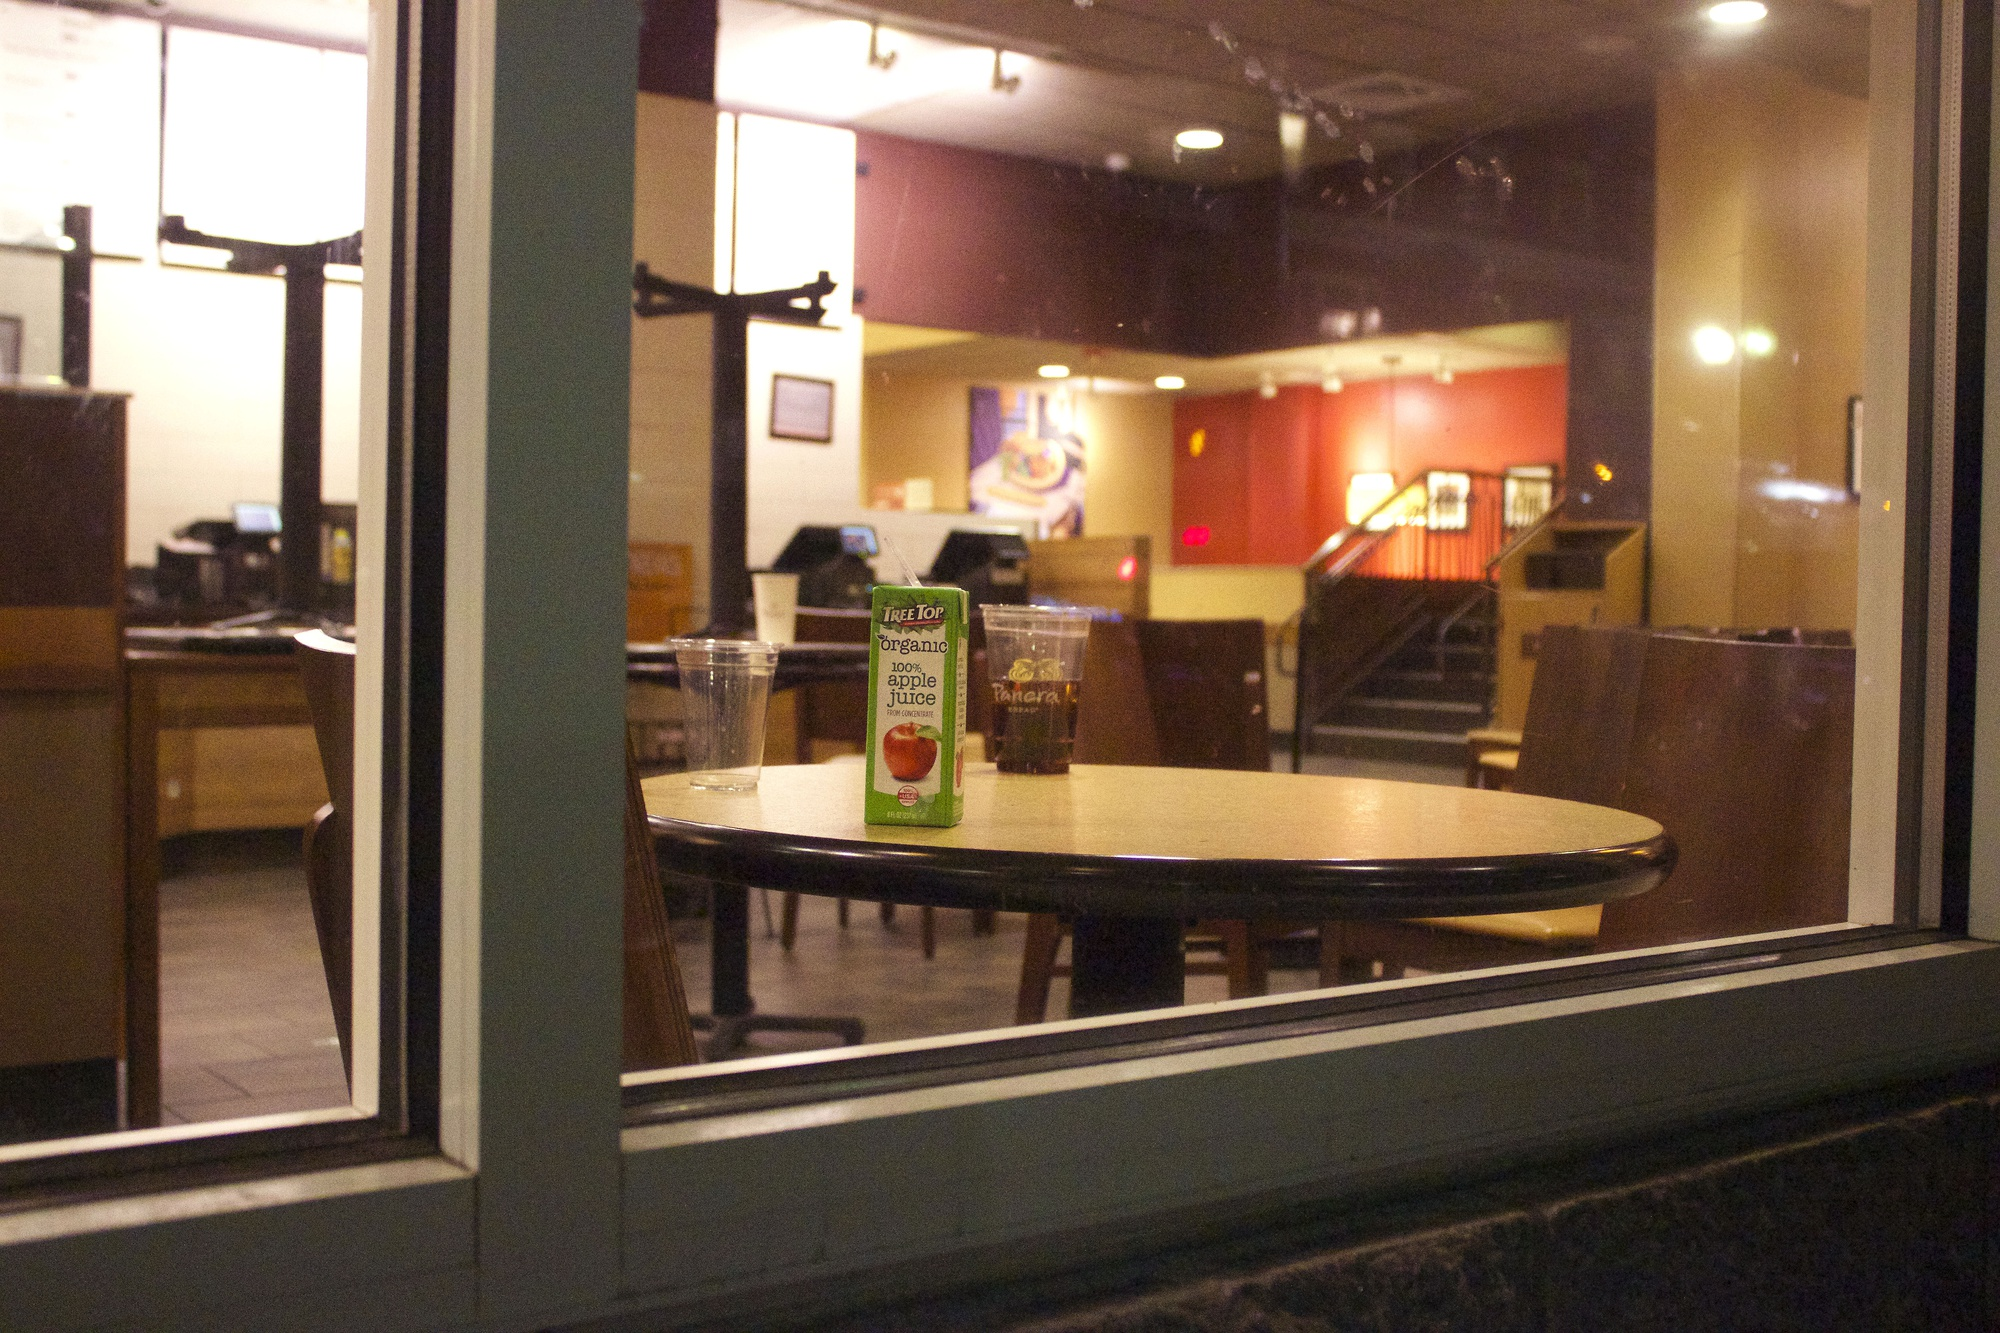 A juicebox and soda sit abandoned on a table after Panera announced that it is closing indefinitely.